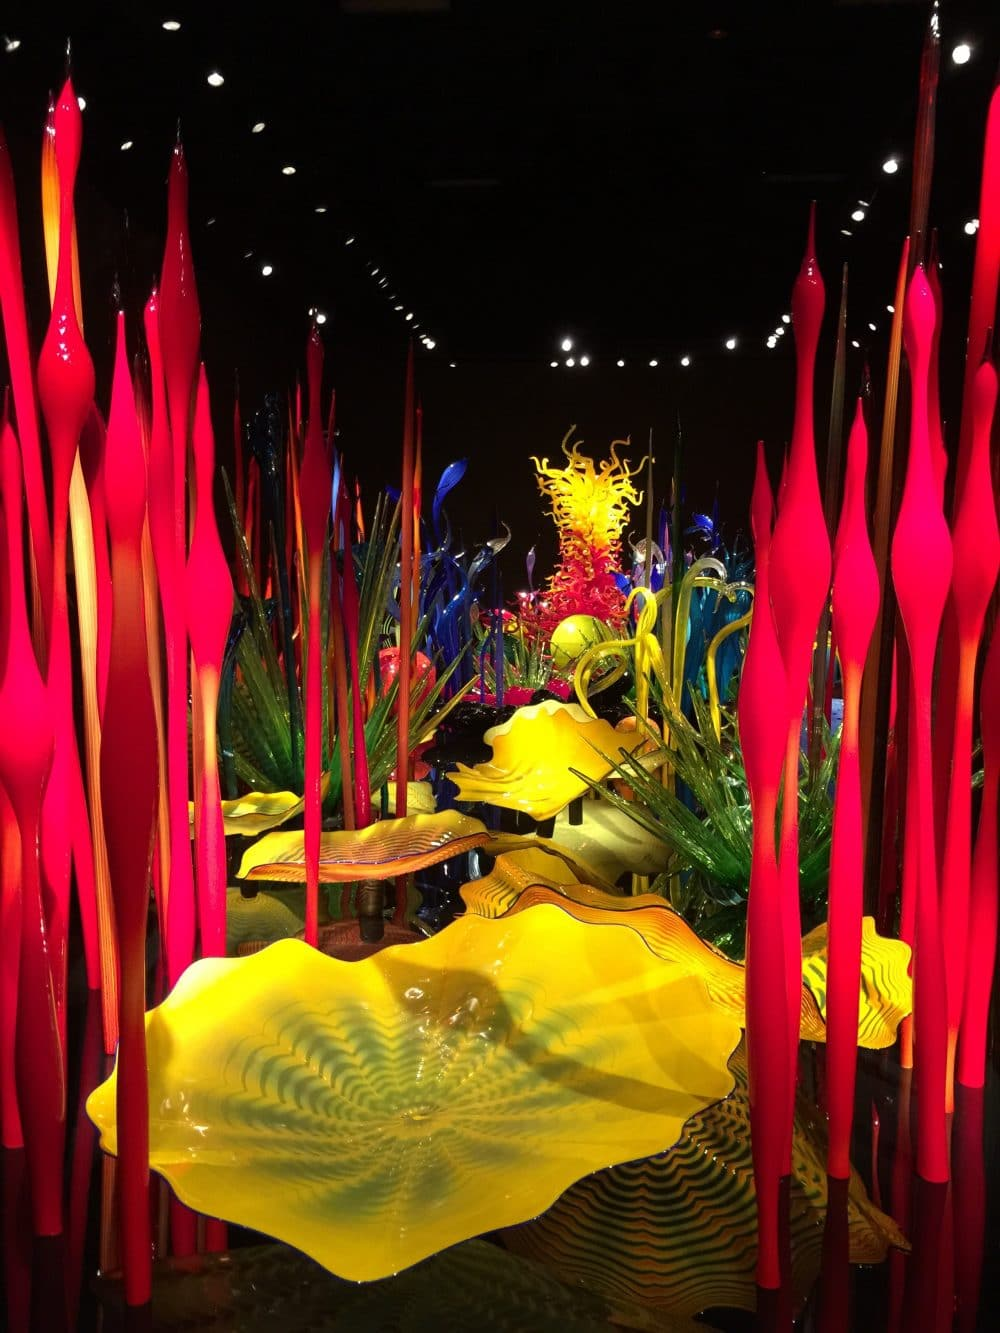 Combining the Best of Art and Winemaking in the Great Northwest: Dale Chihuly and Chateau Ste. Michelle